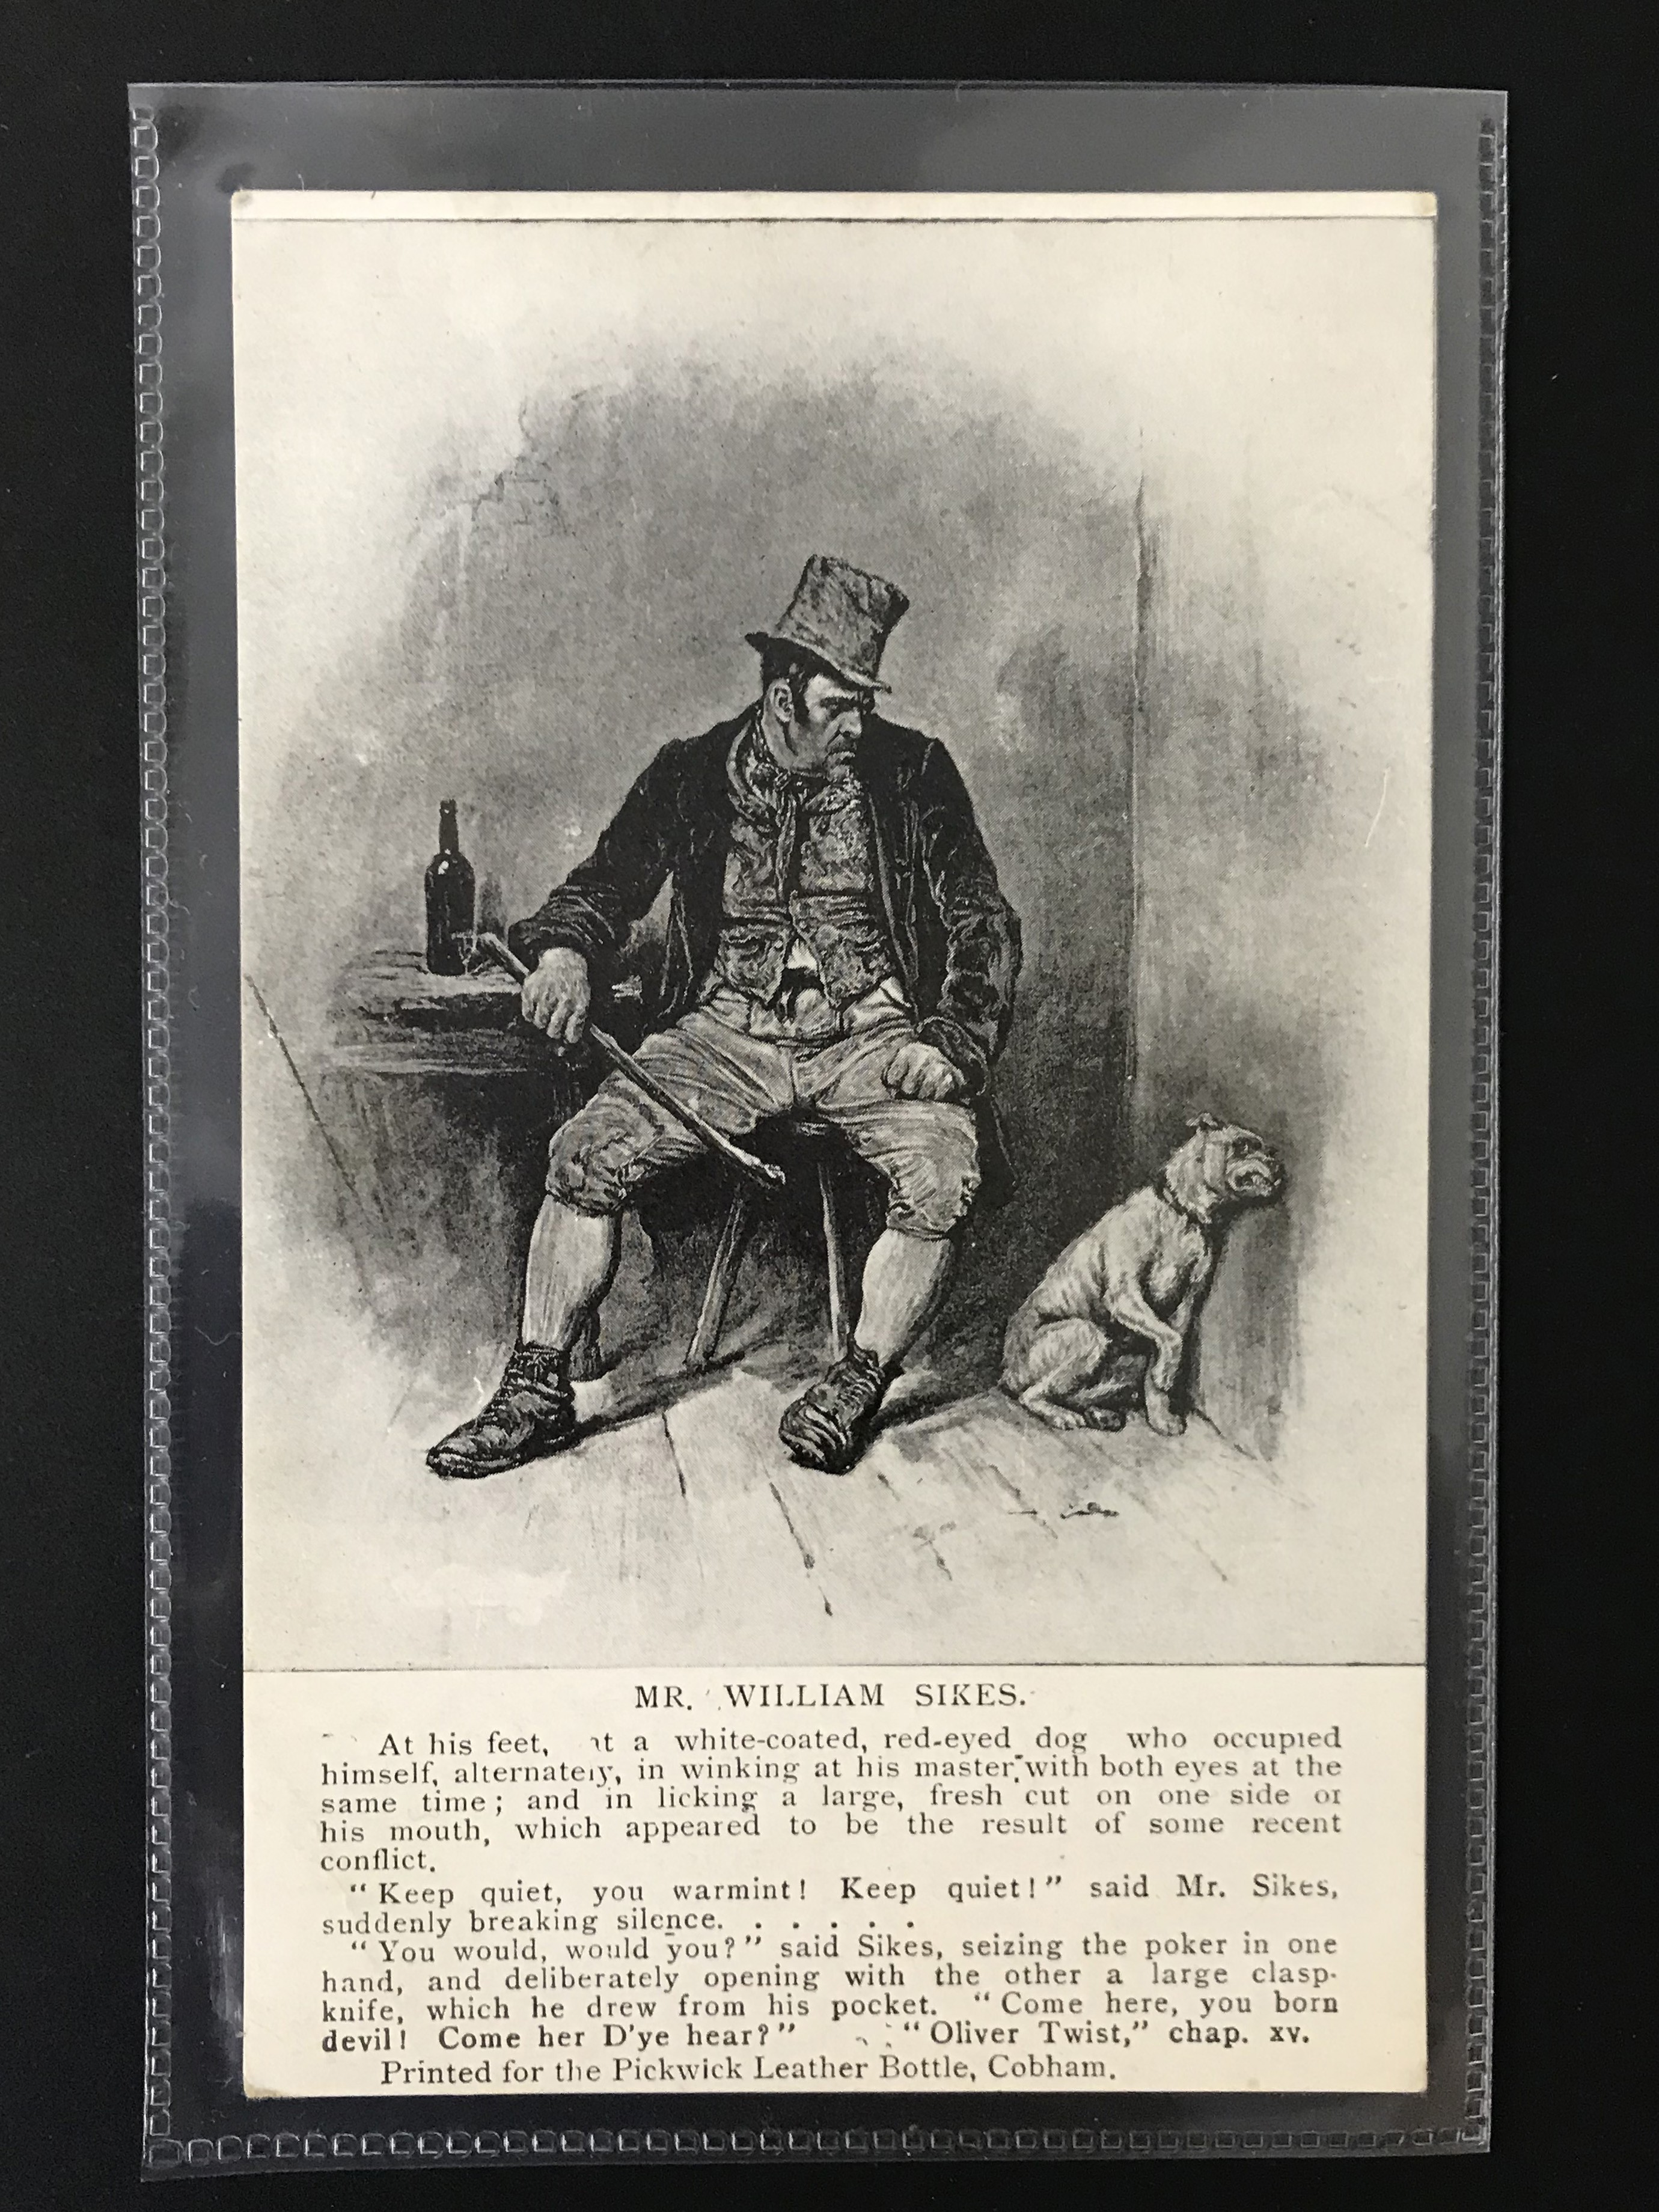 Lot 37 - GROUP OF SEVEN DICKENS RELATED POSTCARDSPRINTED FOR THE PICKWICK LEATHER BOTTLE COMPANY